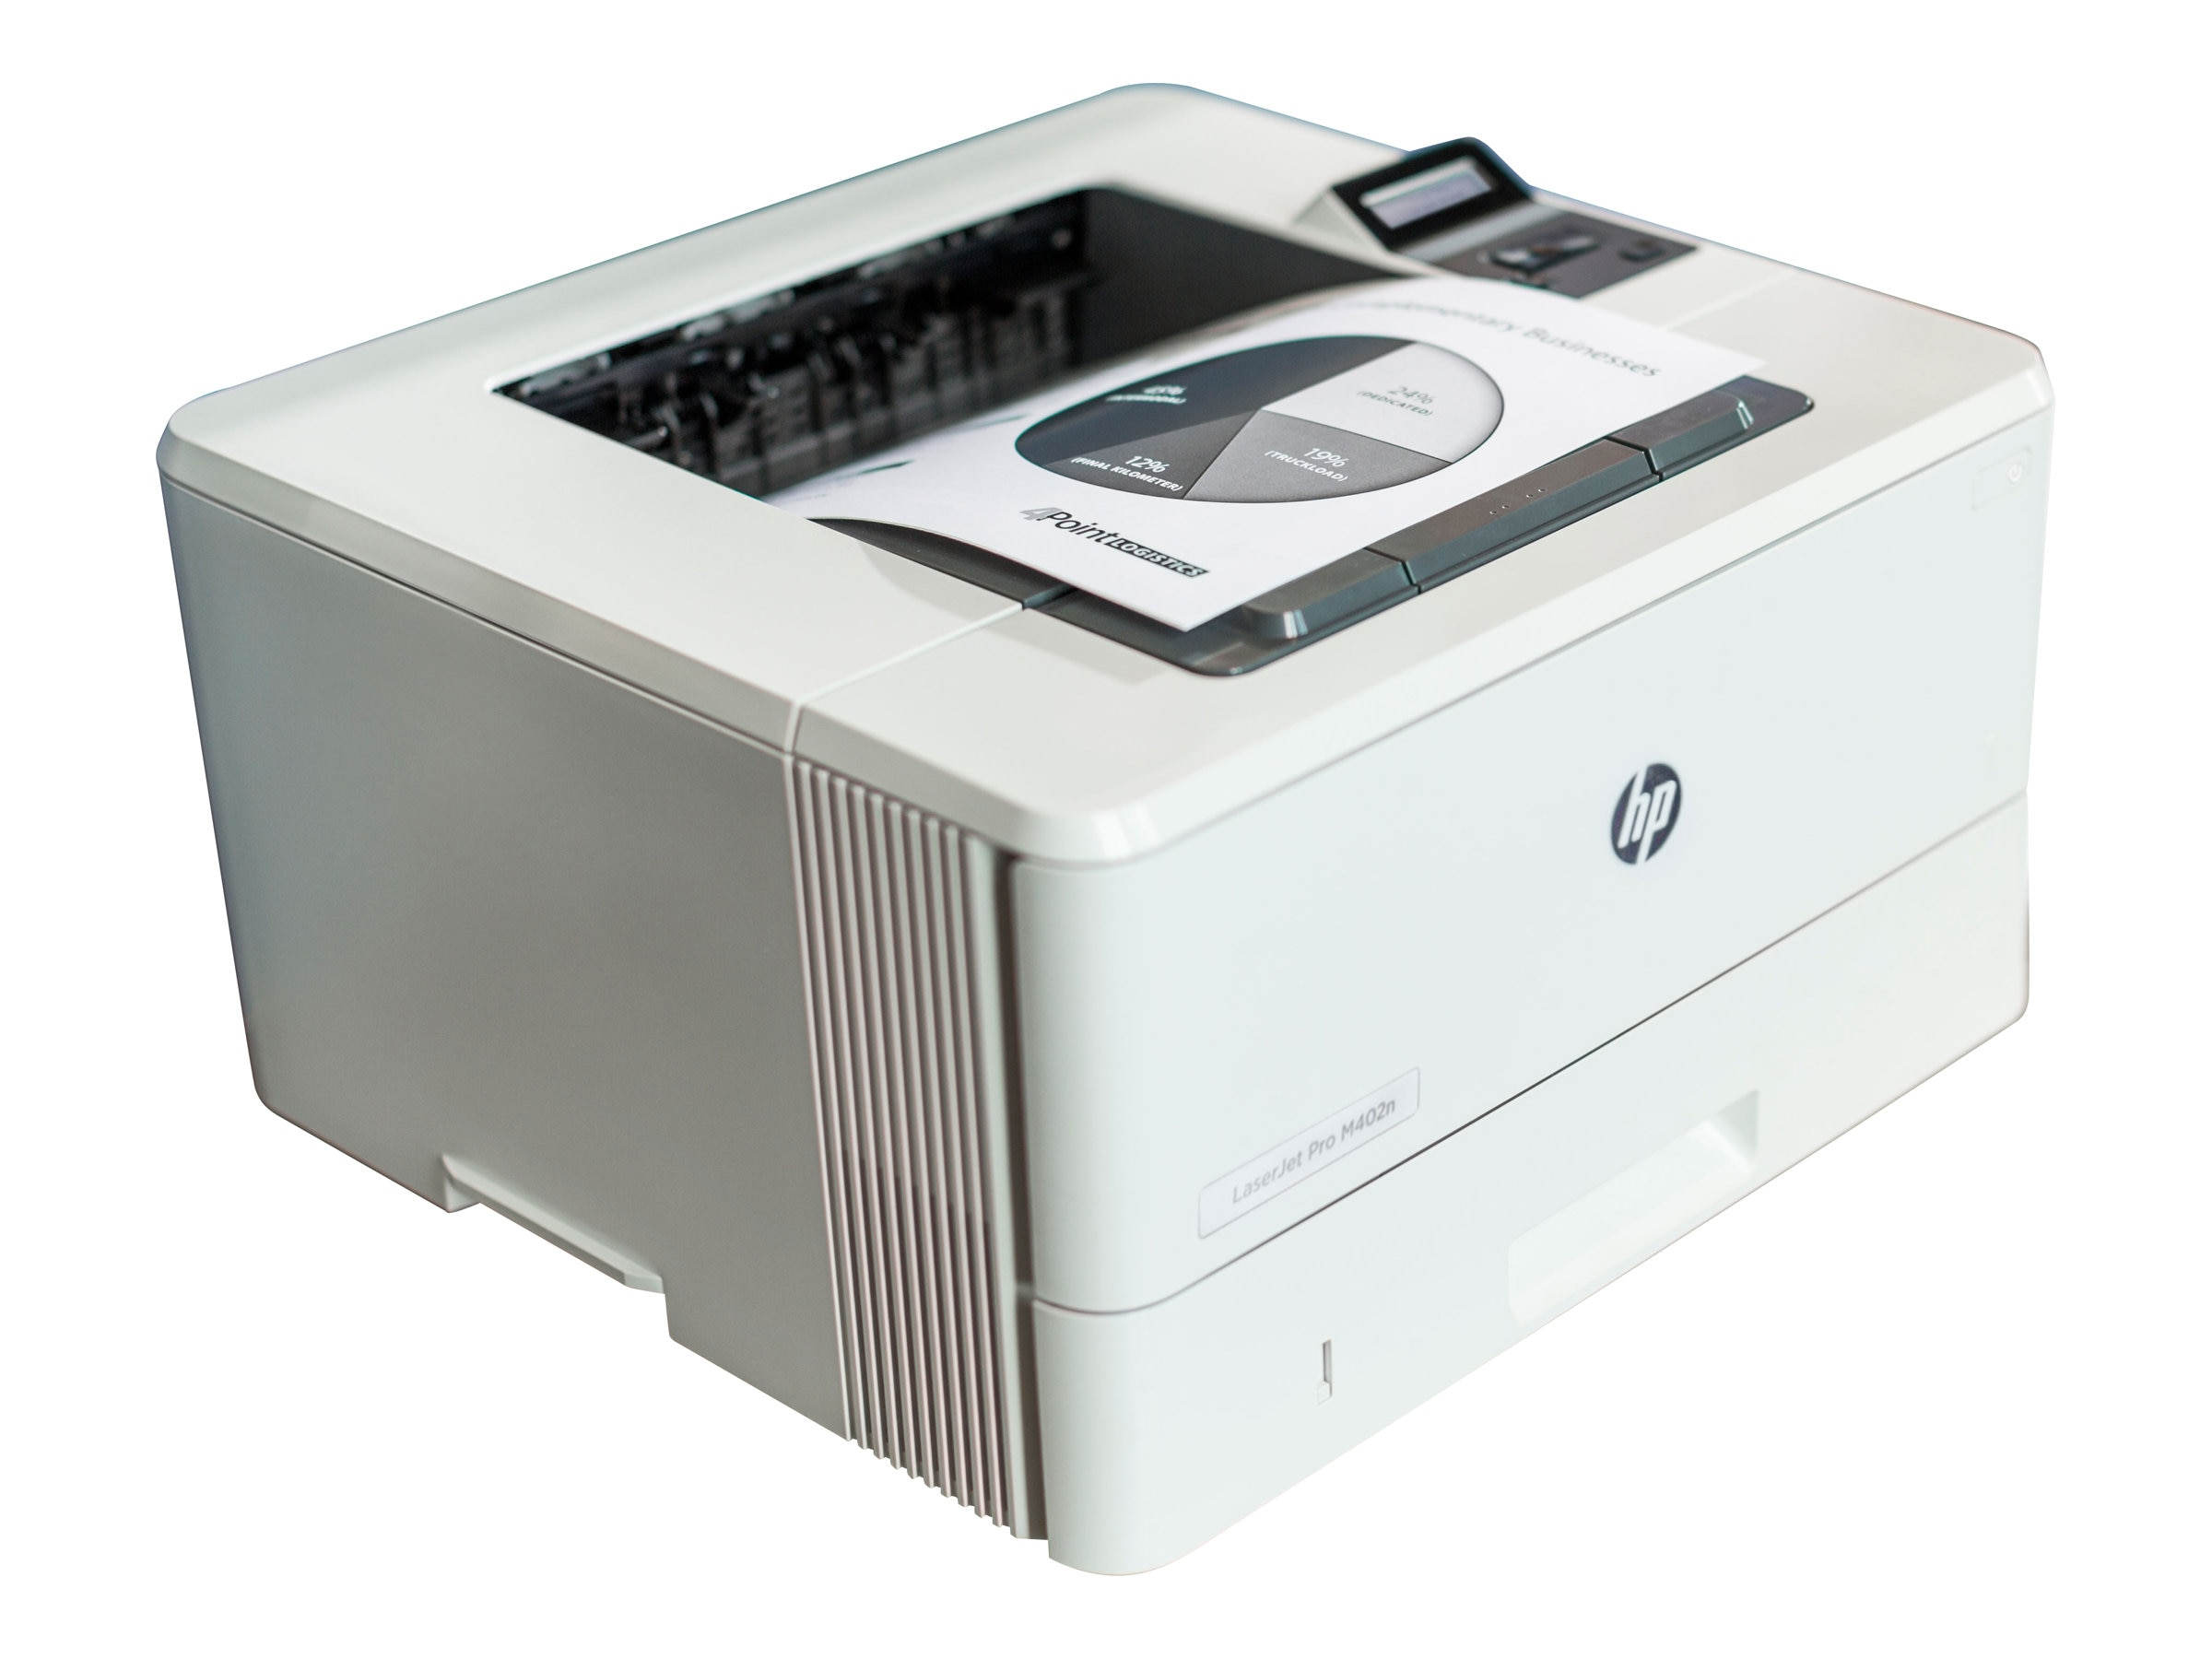 HP LaserJet Pro M402dn Printer (replaces M401dne), C5F94A#BGJ, 30006331, Printers - Laser & LED (monochrome)